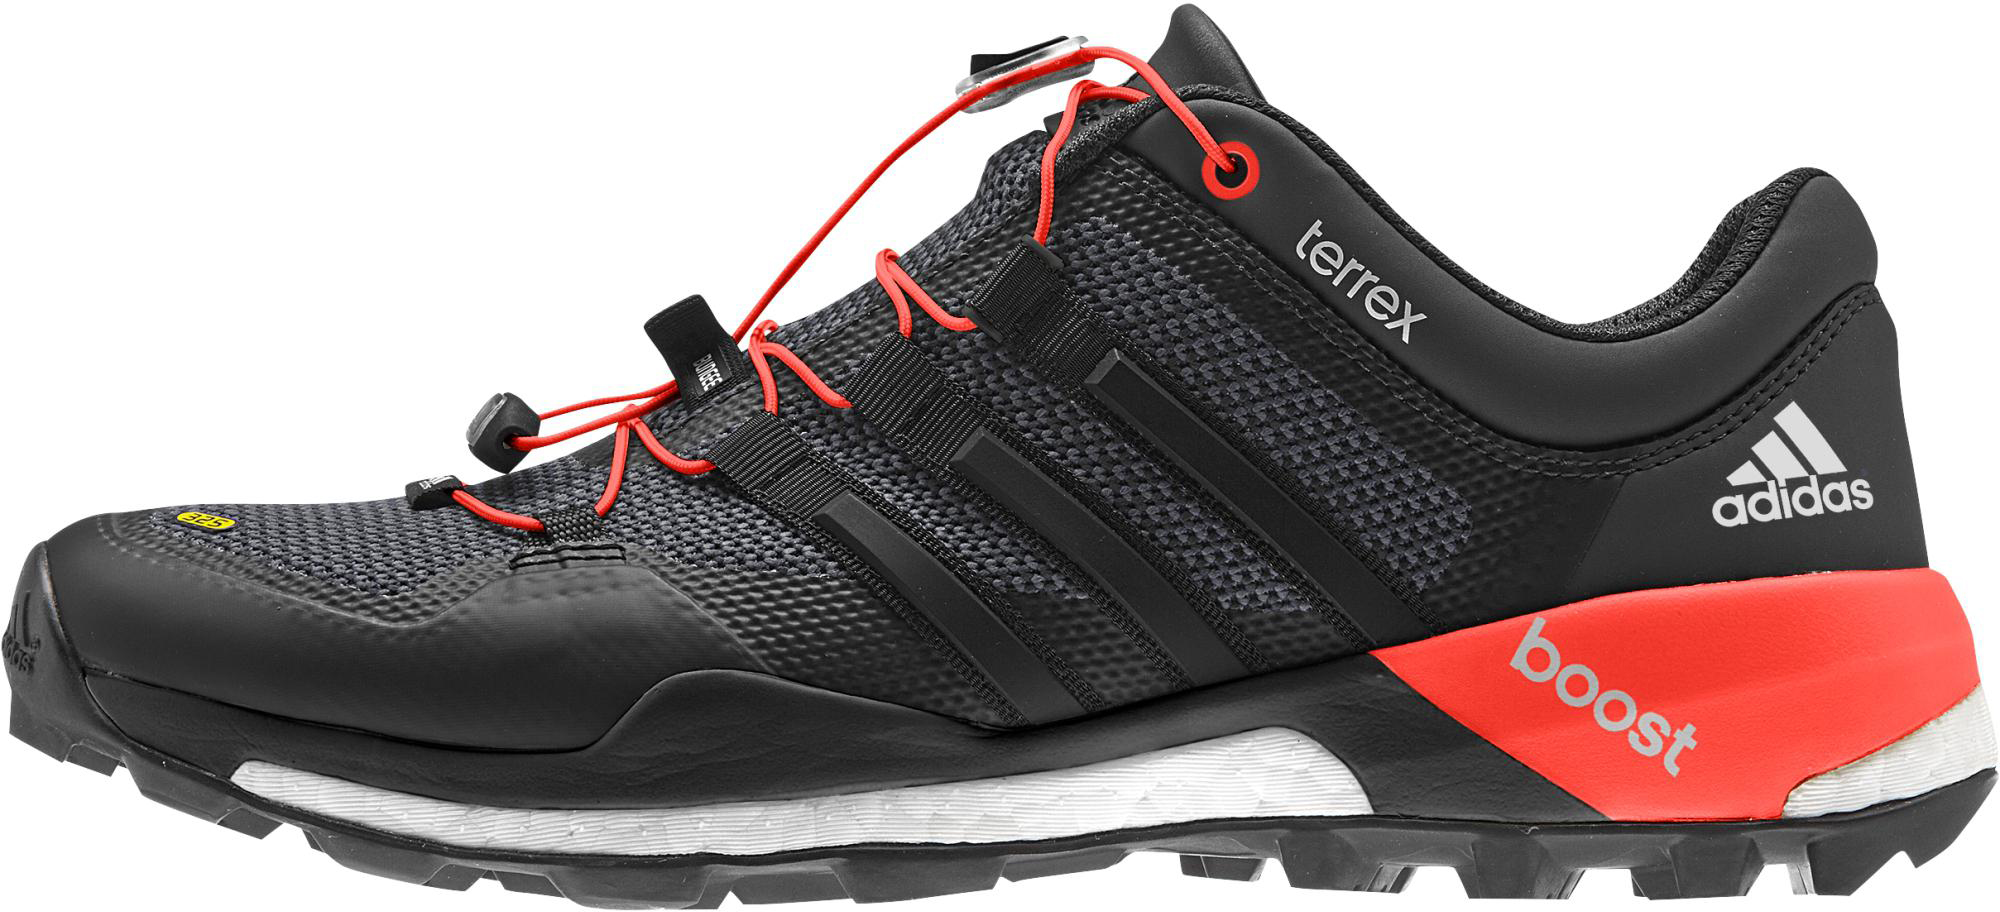 adidas Terrex Boost Shoes (AW15)